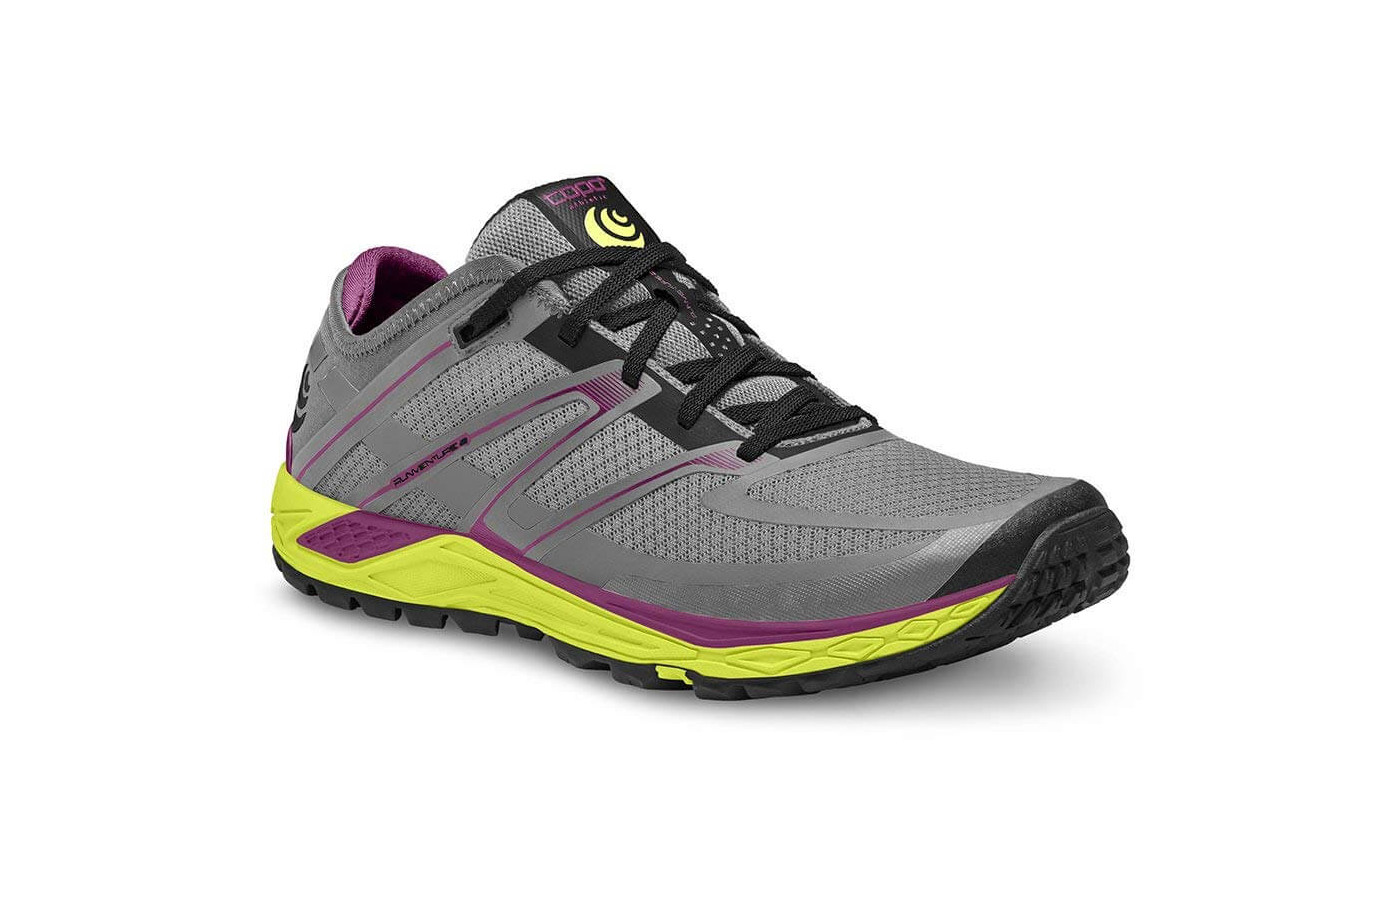 The Runventure 2 features Abrasion Resistant Mesh